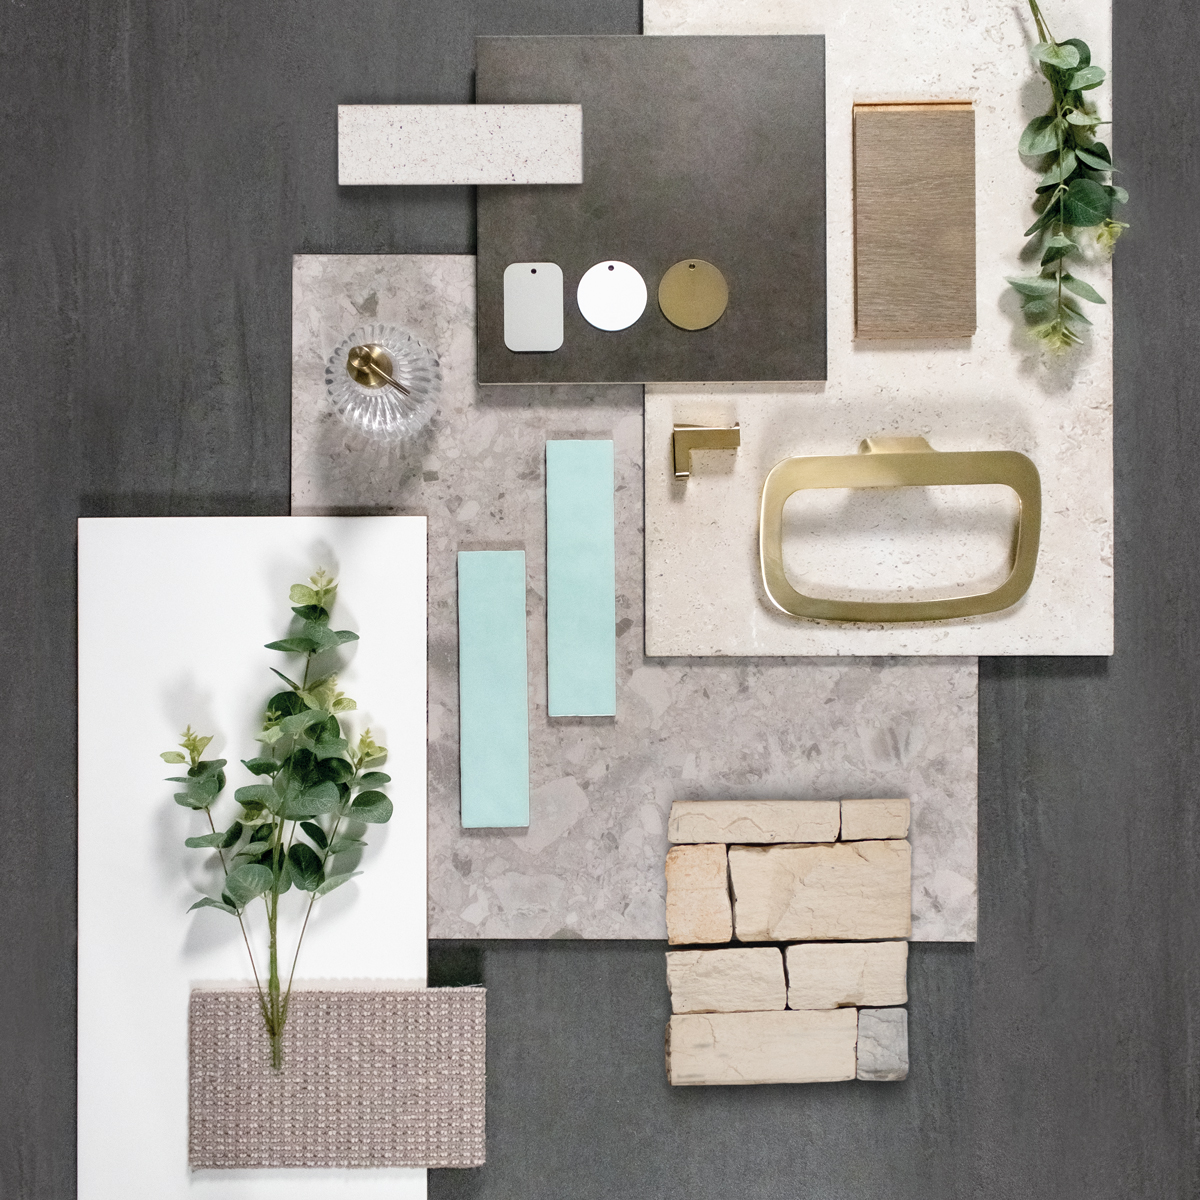 Palm springs interior design flat lay